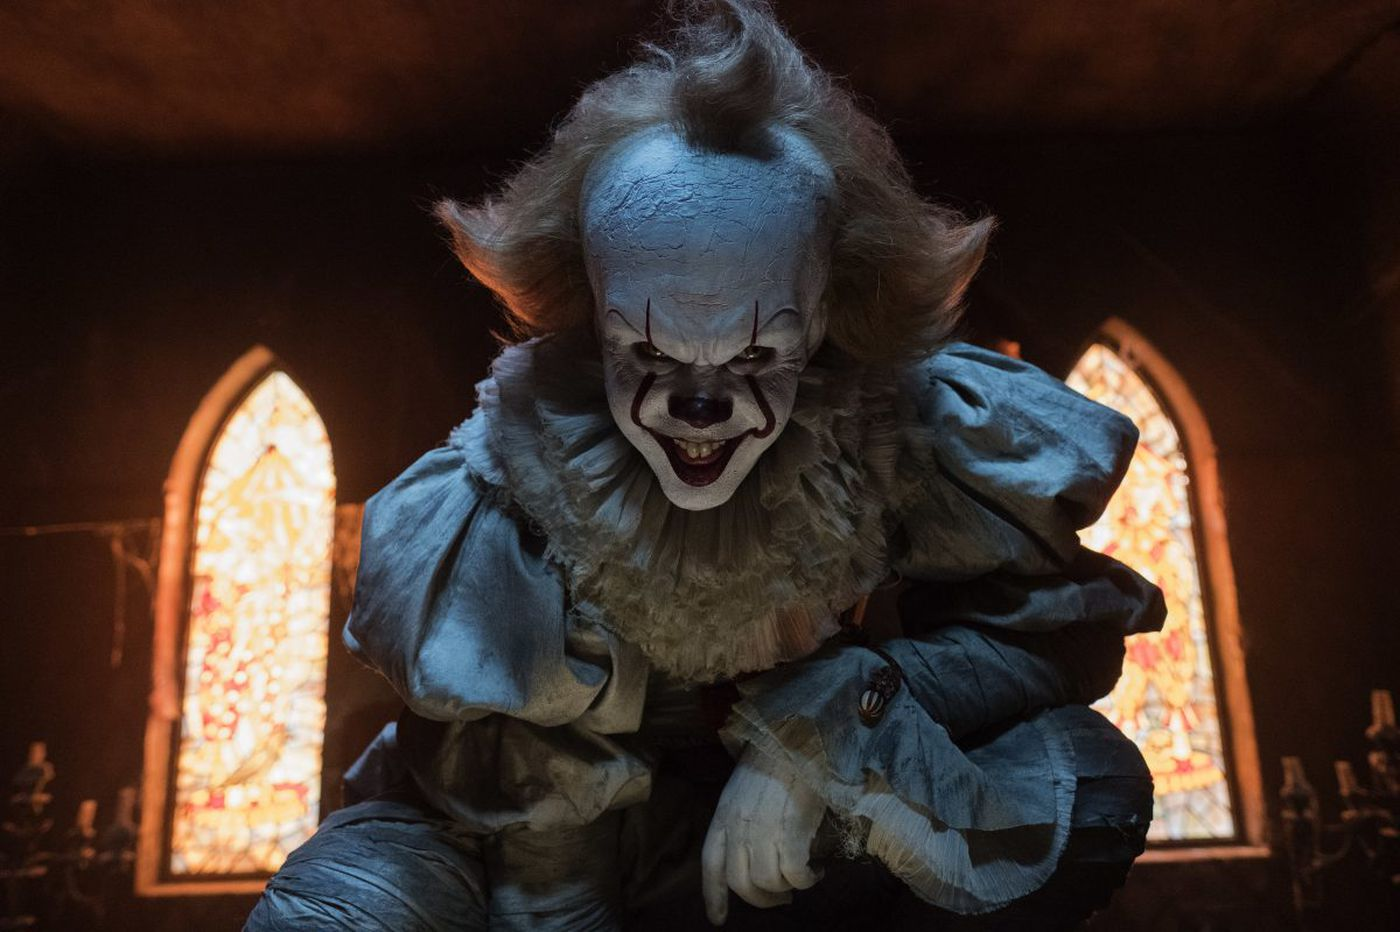 'It' is King of the box office, scaring up record-breaking $117 million